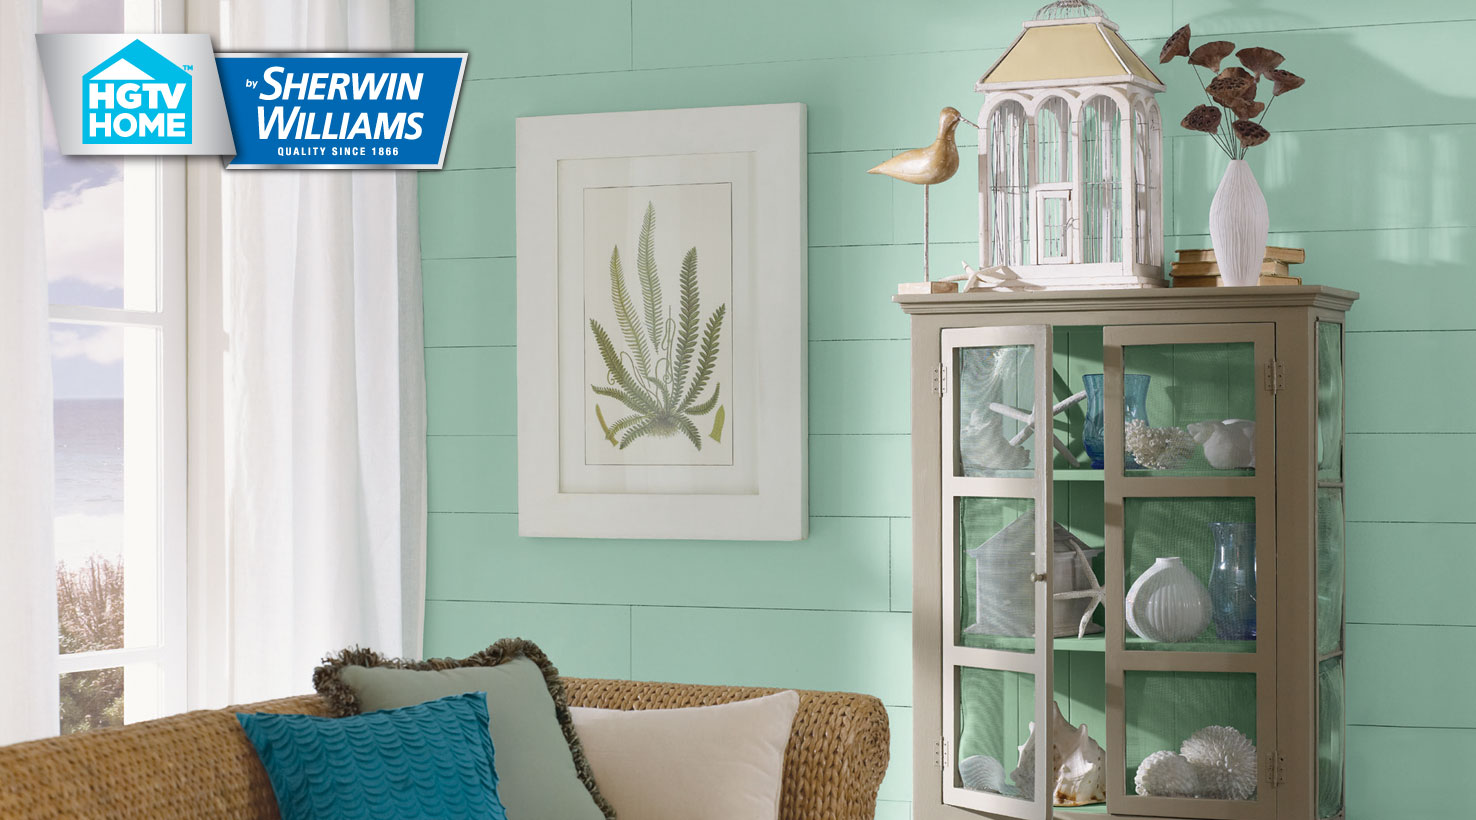 Cool Blue Paint Coastal Cool Paint Color Collection Hgtv Home By Sherwin Williams